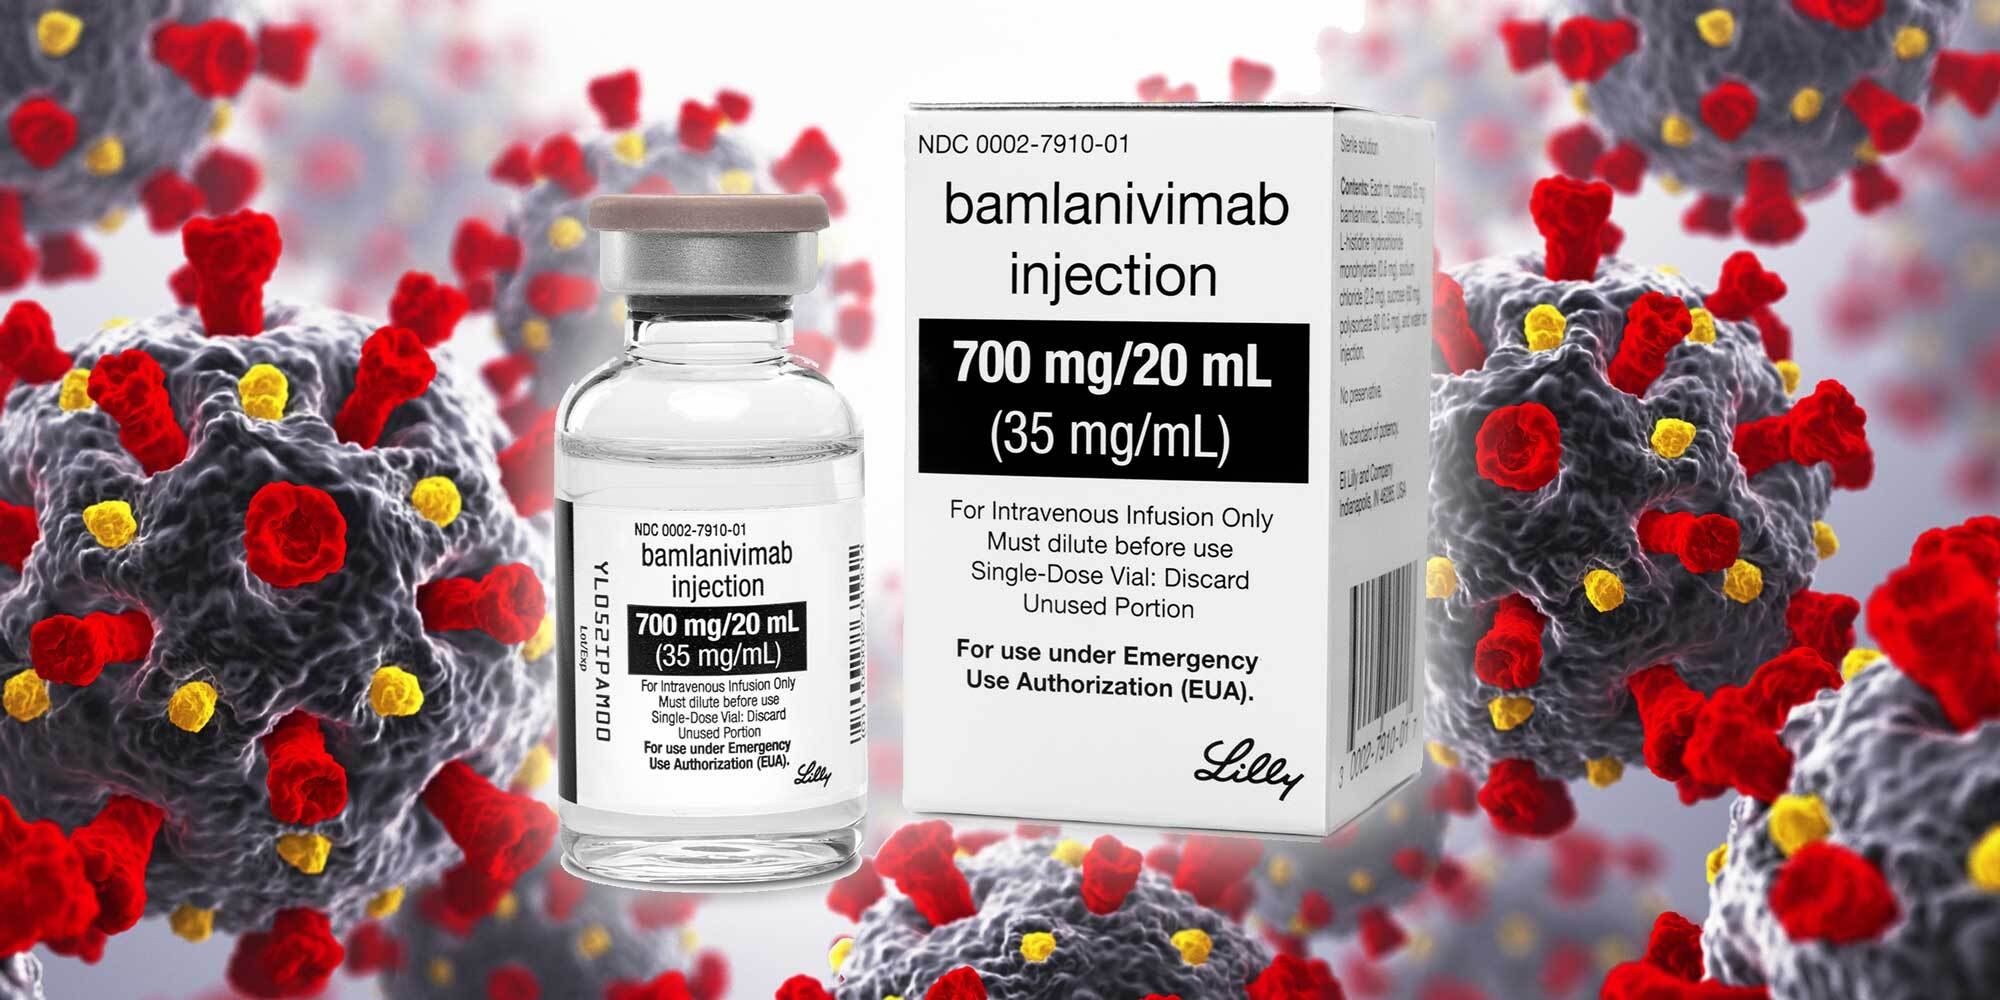 US to begin distribution of Bamlanivimab, COVID-19 antibody from Eli Lilly